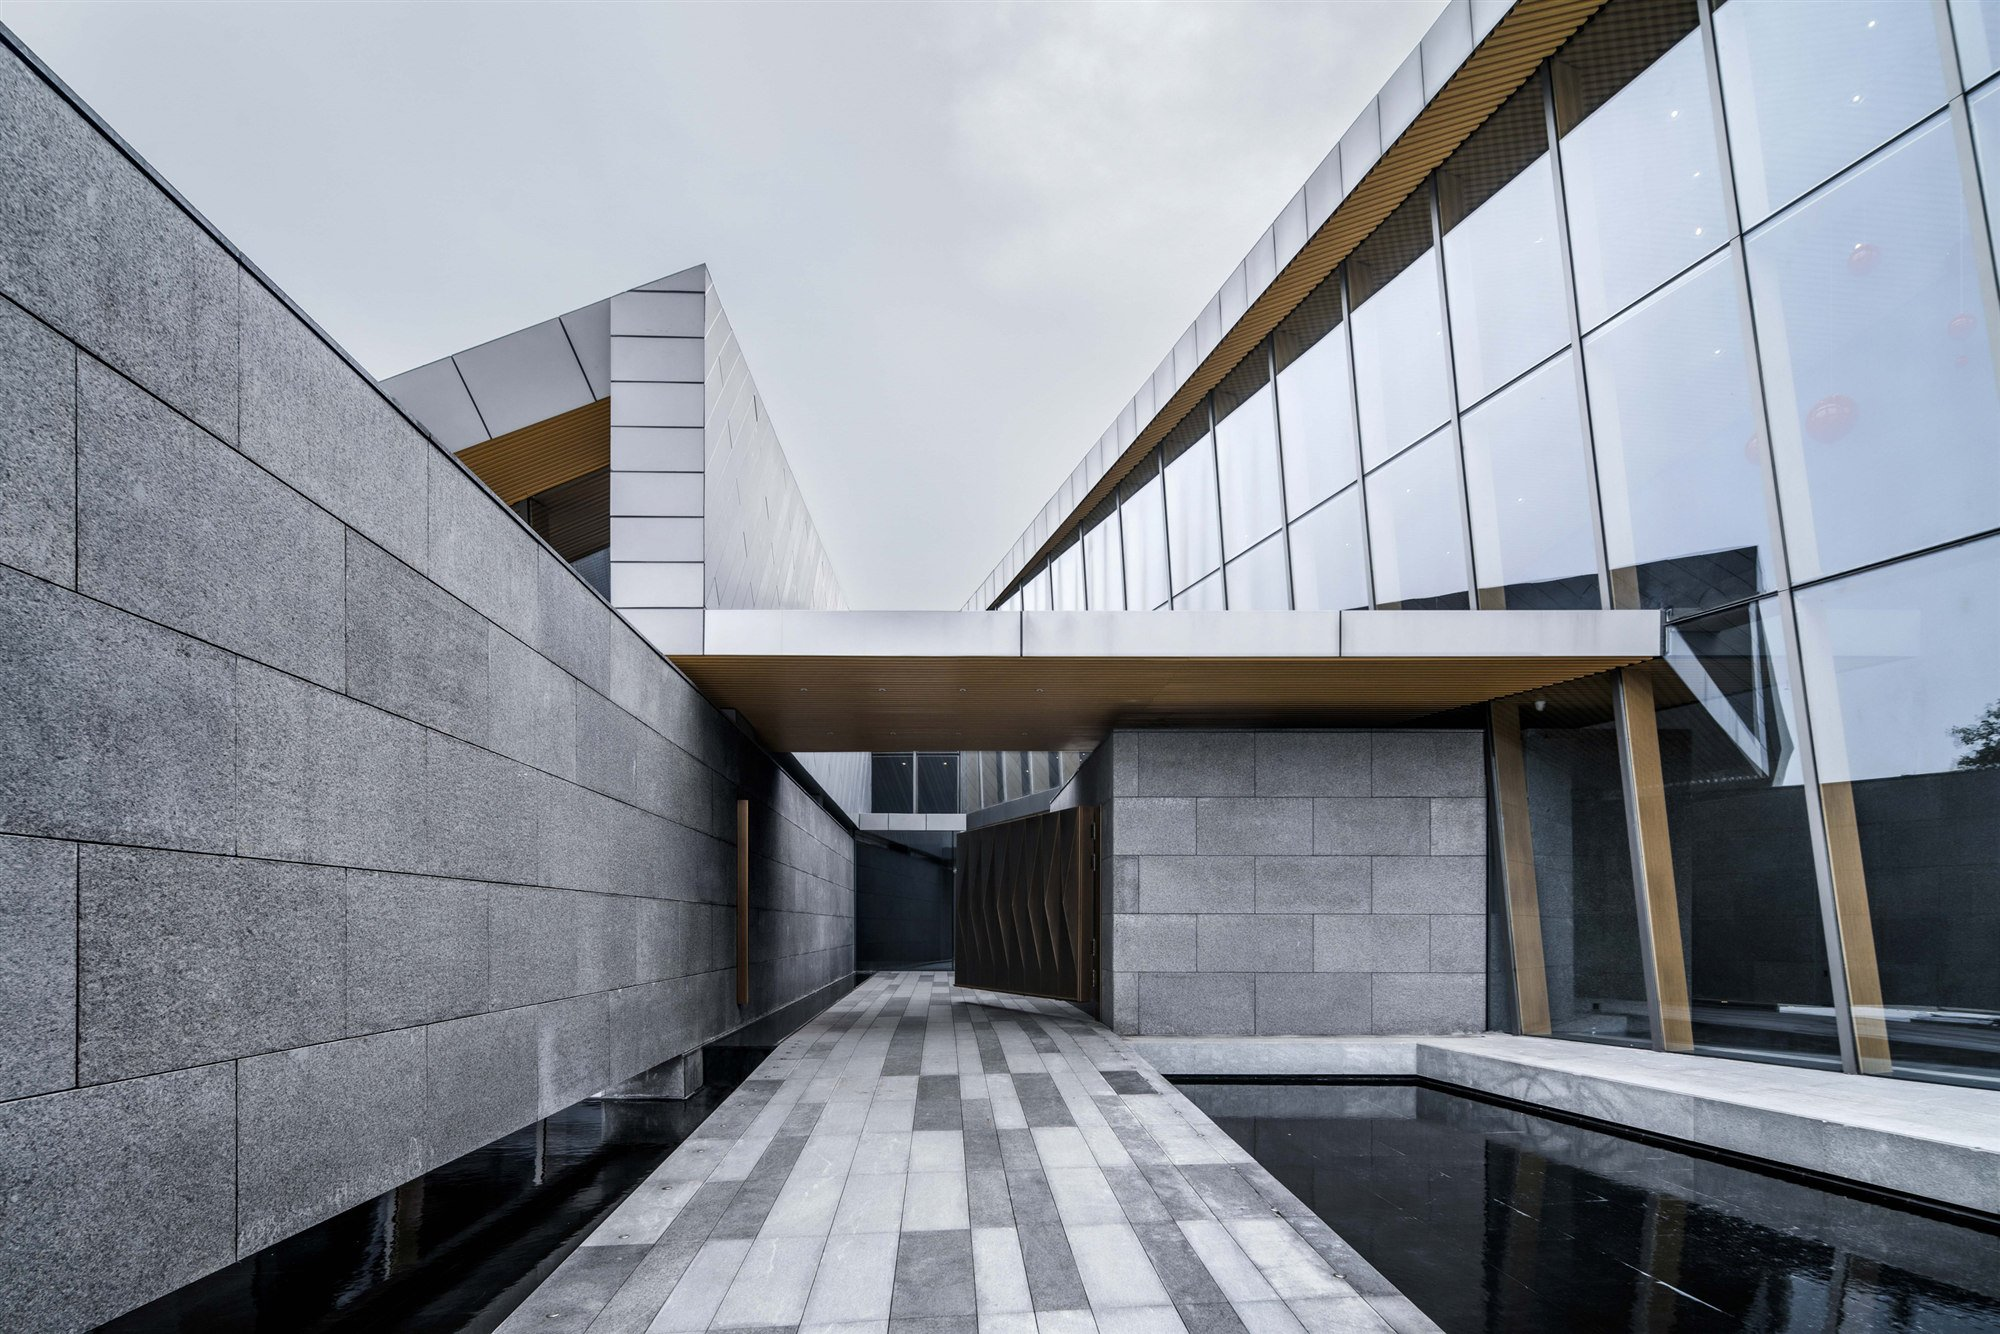 View street view and entrance gate from inner courtyard. Lacime Architects